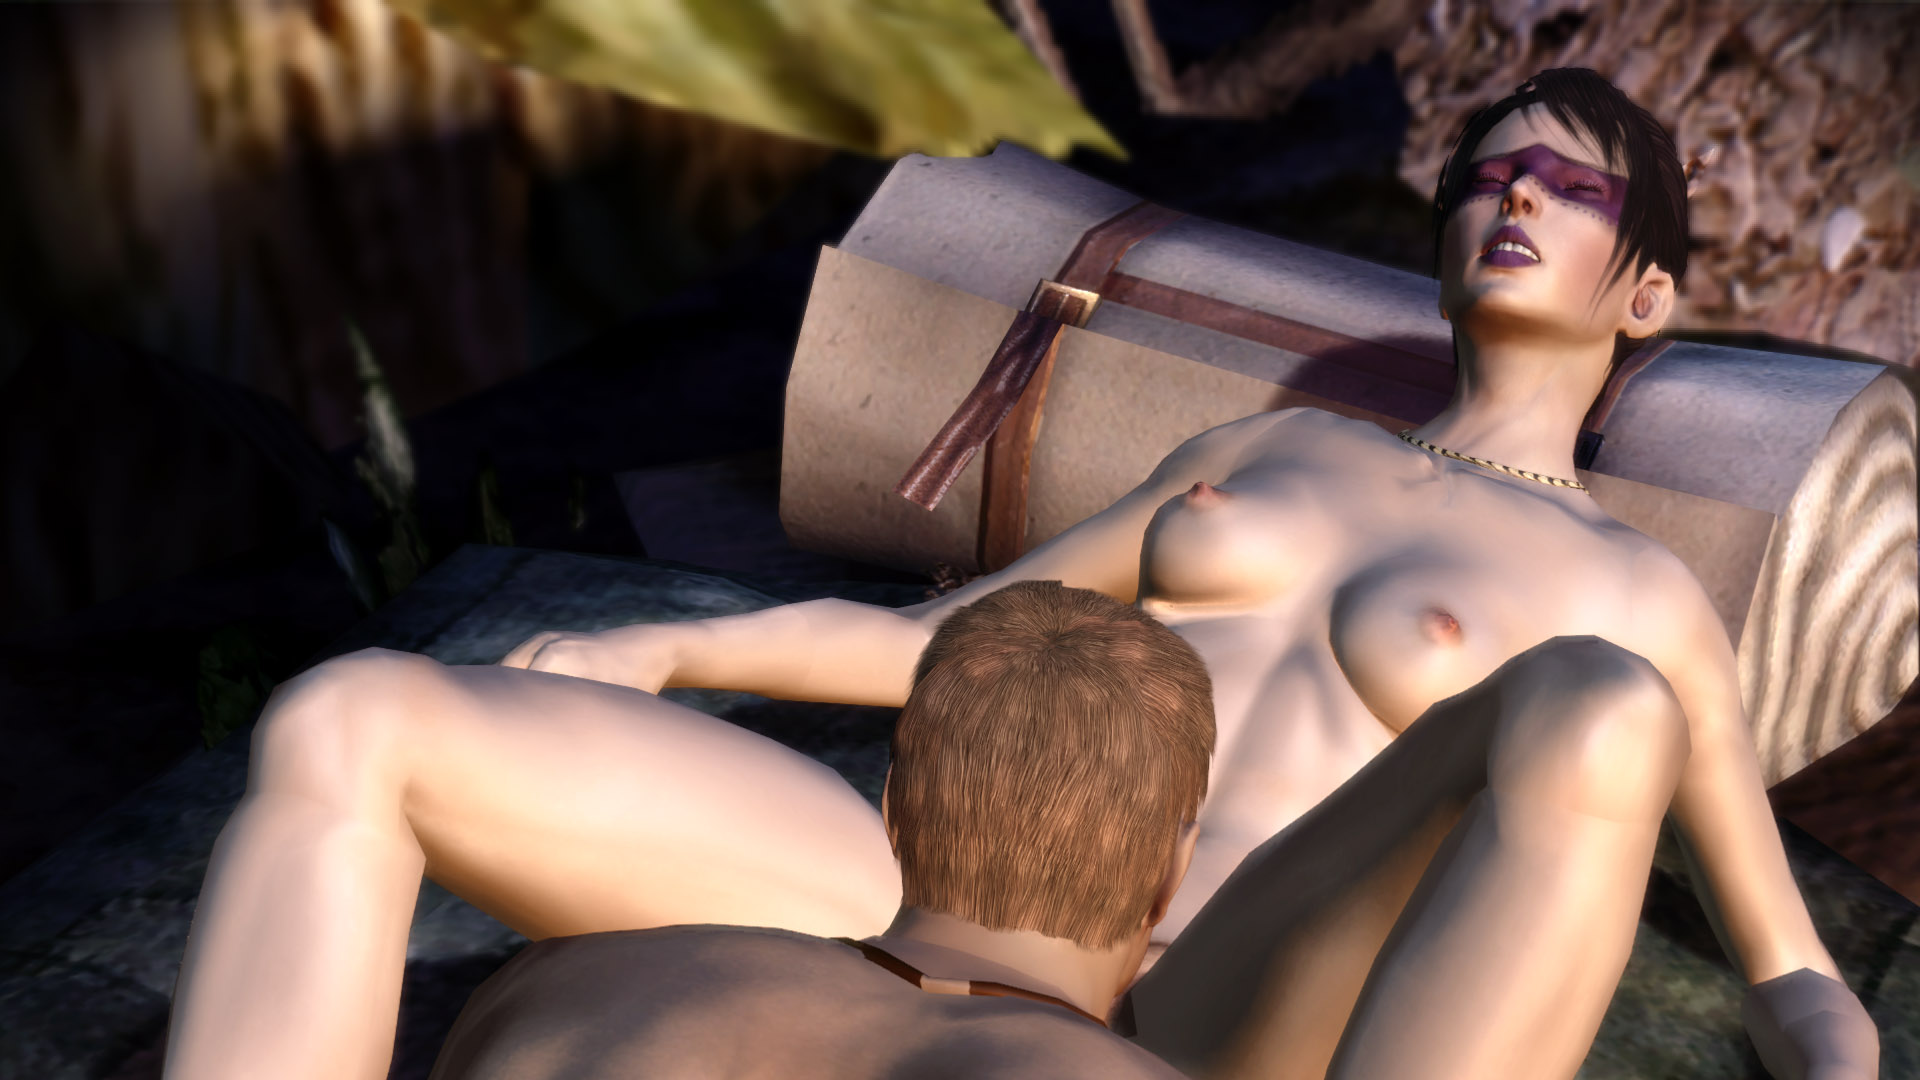 Dragon age origins mod nsfw sex hentay clips